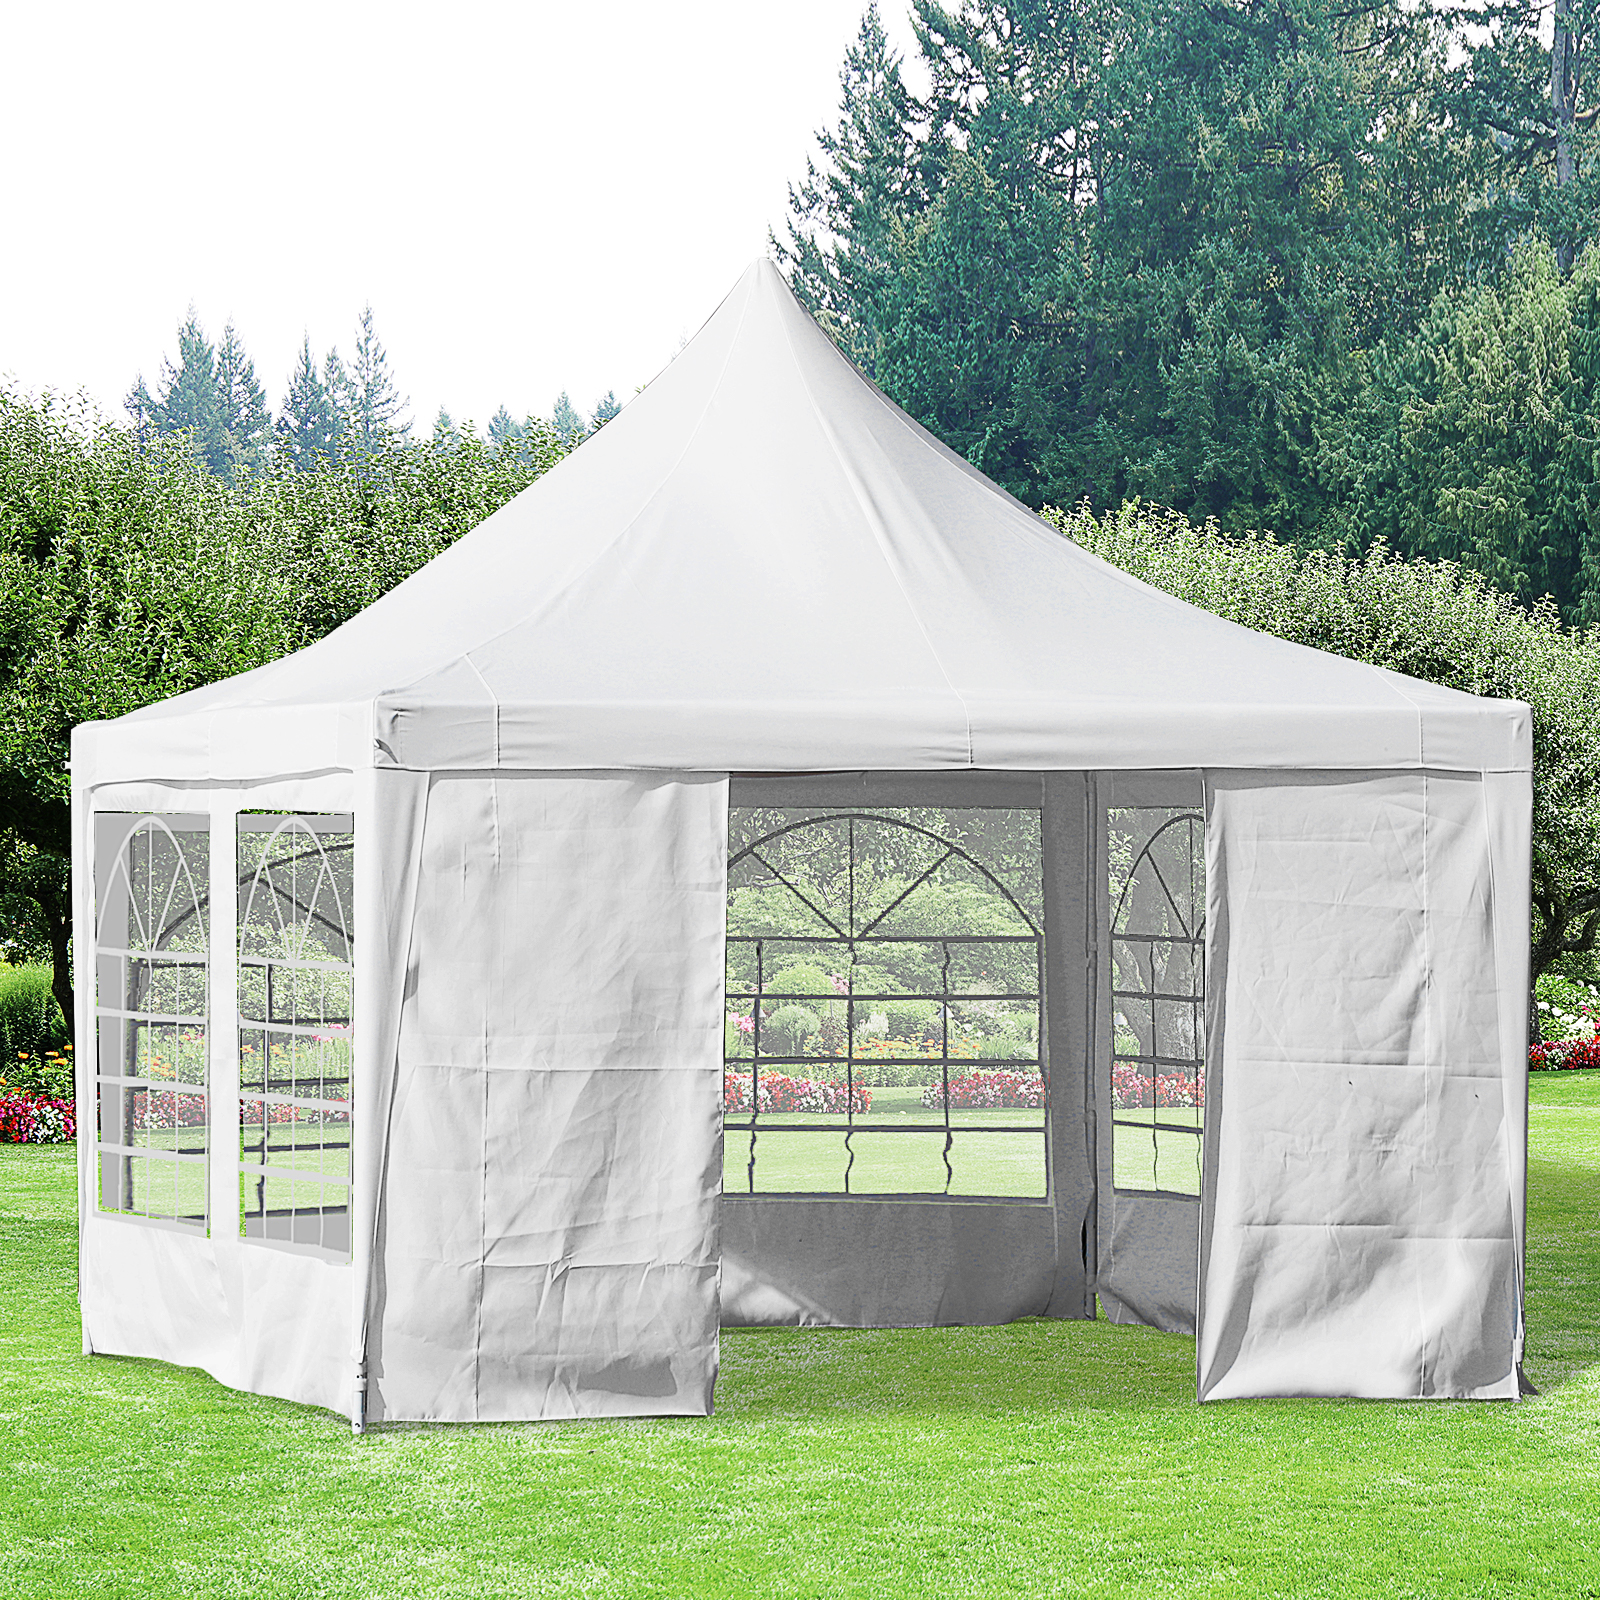 White Outsunny 3.6 x 3.6m Garden Gazebo Marquee Party Tent Wedding Canopy Outdoor Heavy Duty Metal Frame